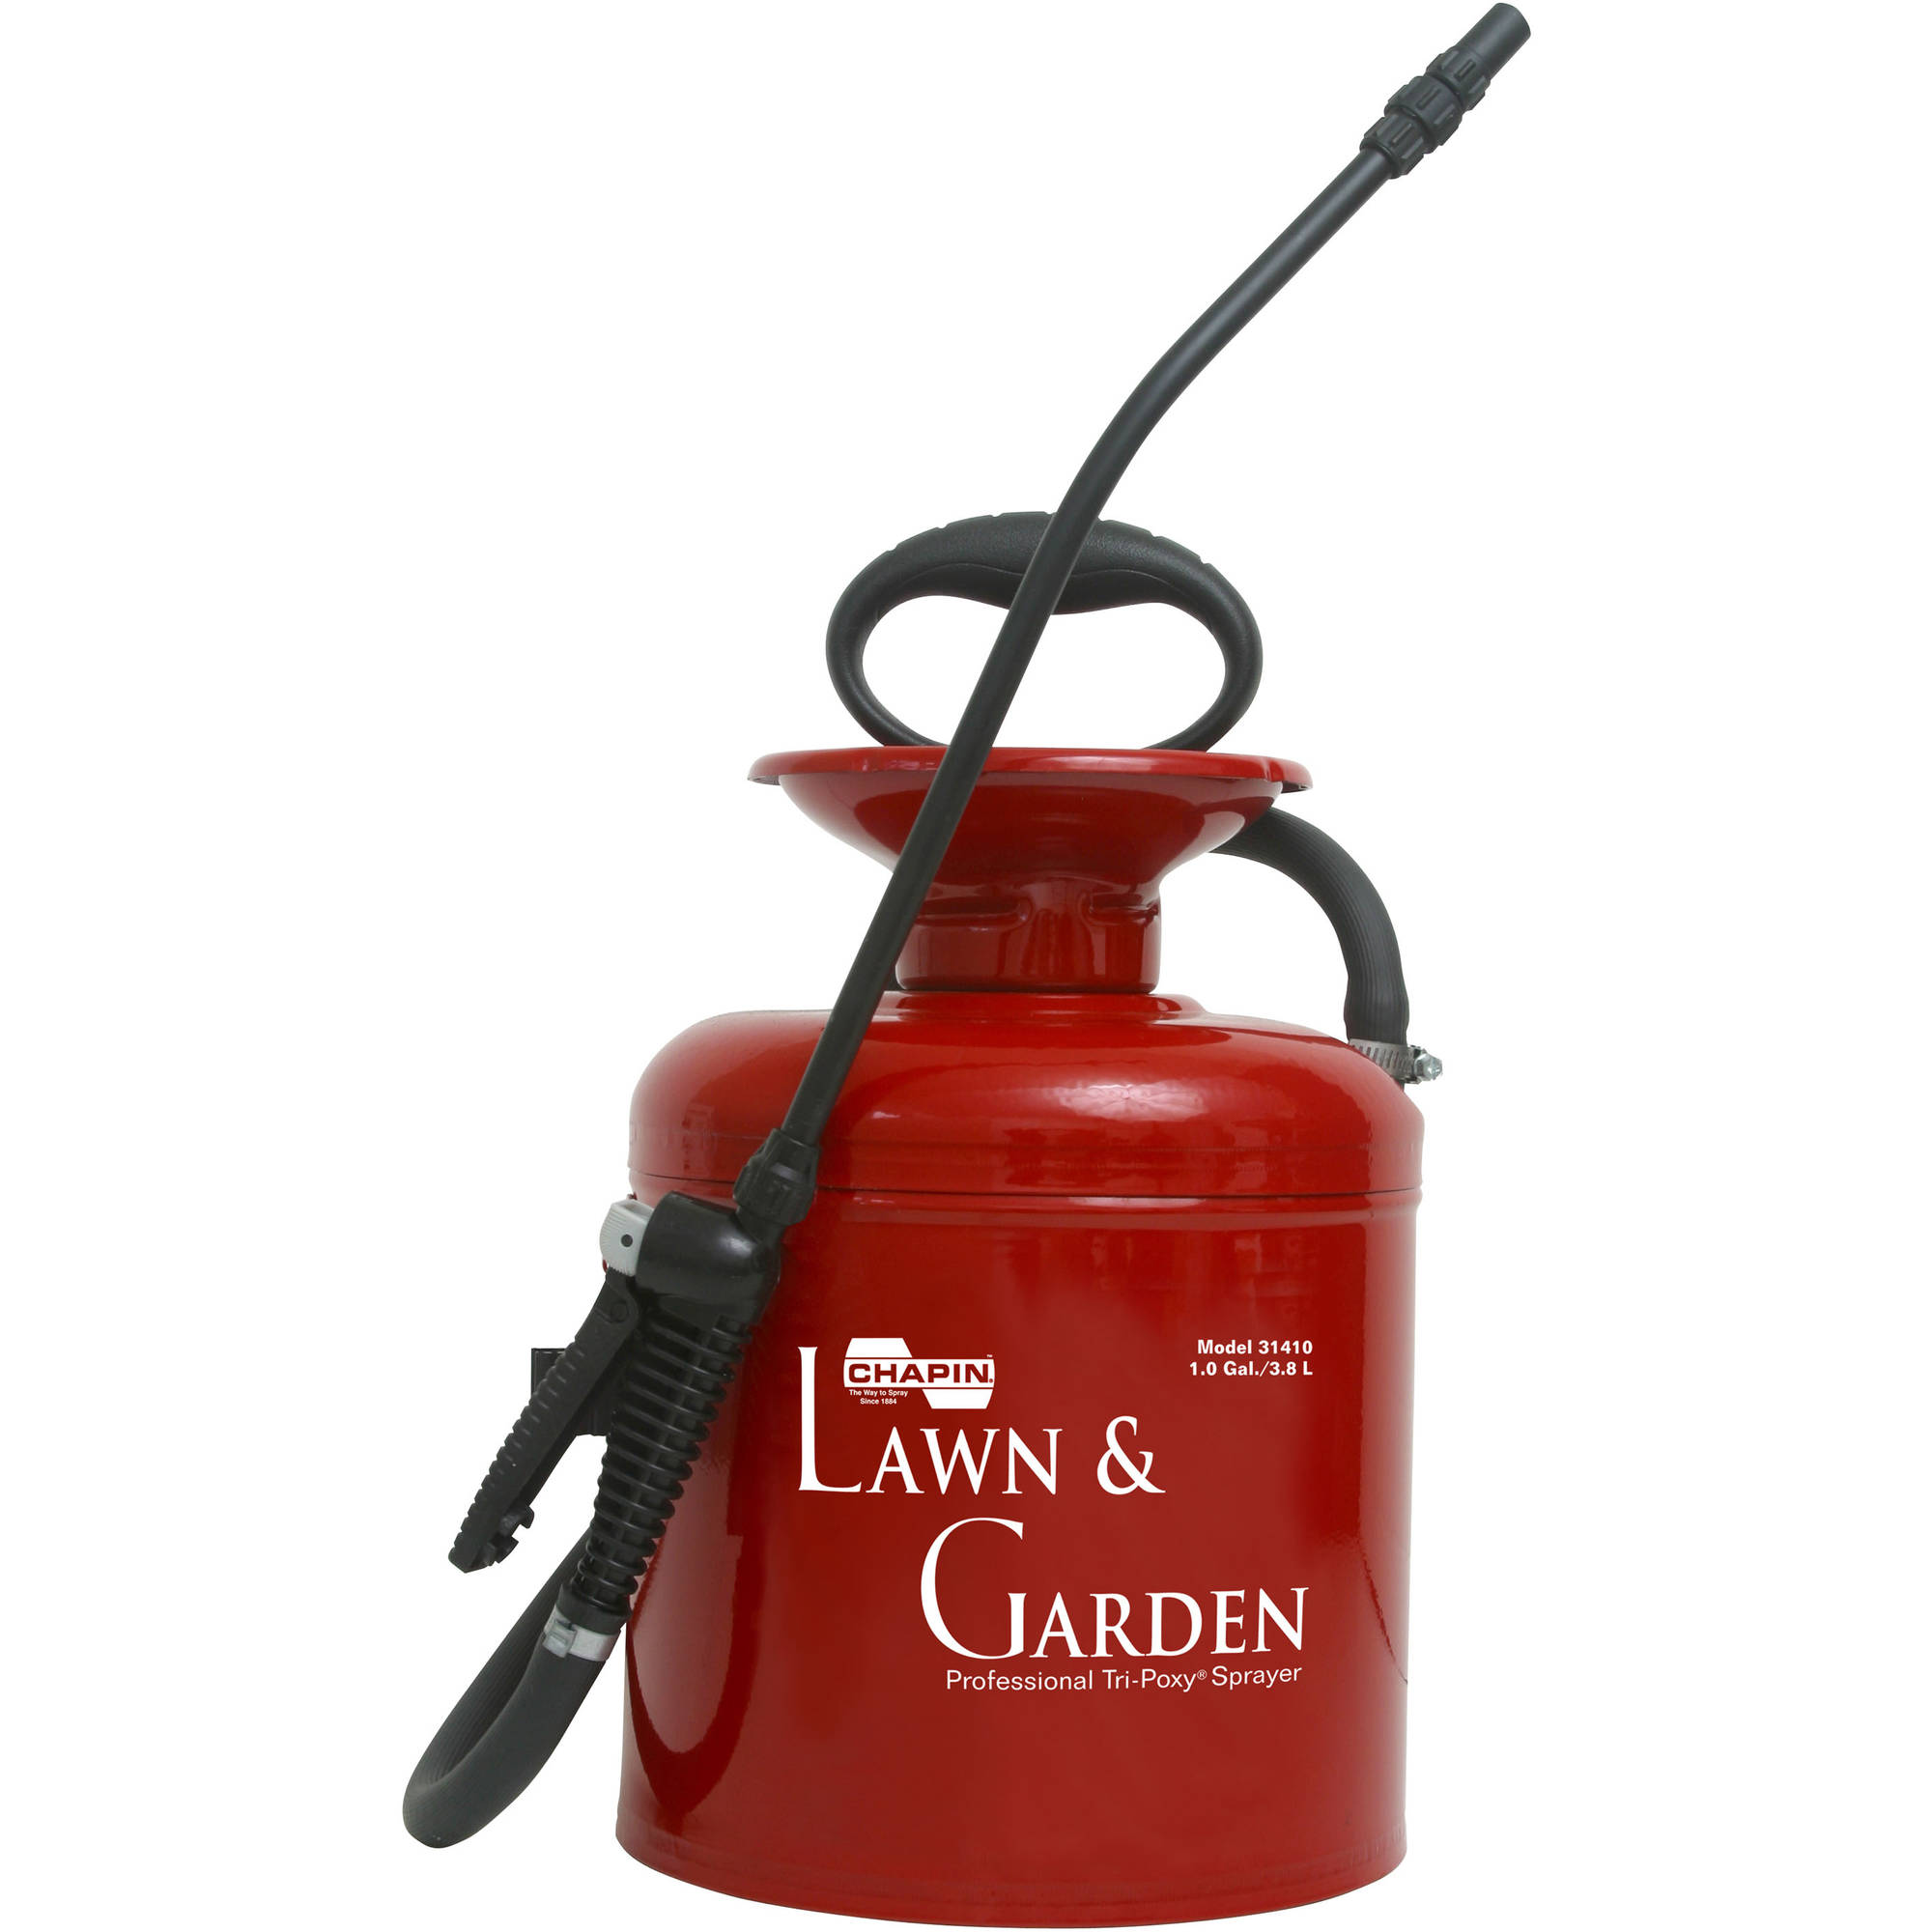 Chapin 31410 1-Gallon Lawn and Garden Series Tri-Poxy Steel Sprayer